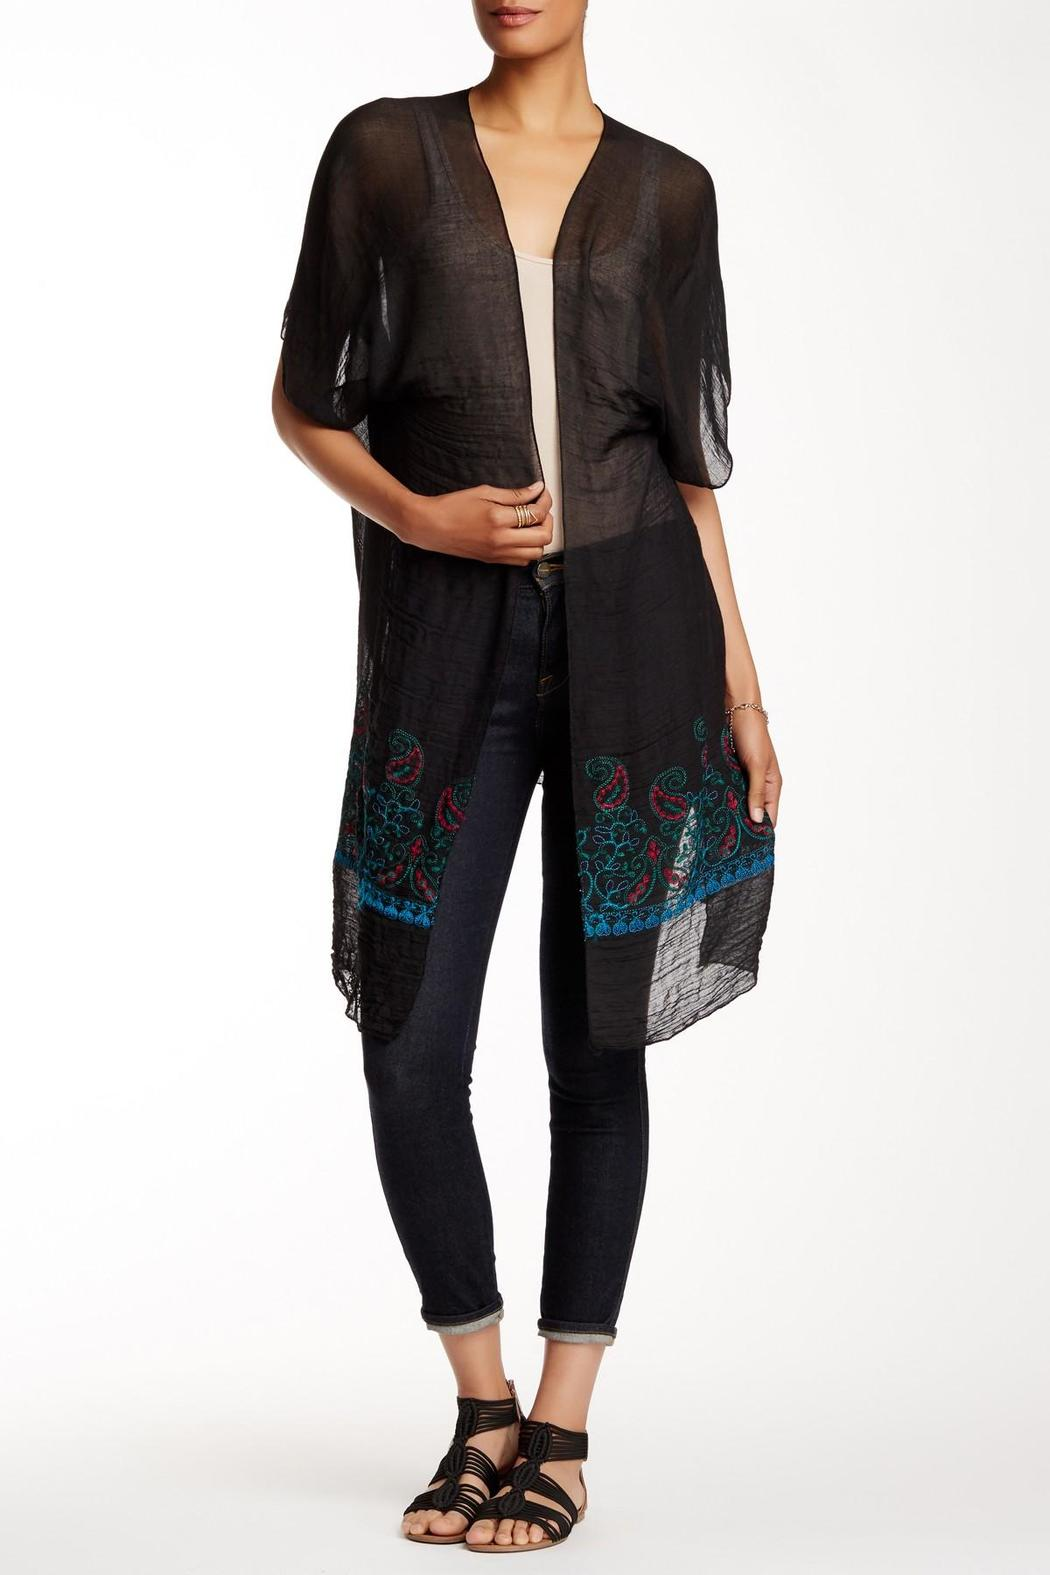 Rikka Sheer Black Long Cardigan - Front Cropped Image